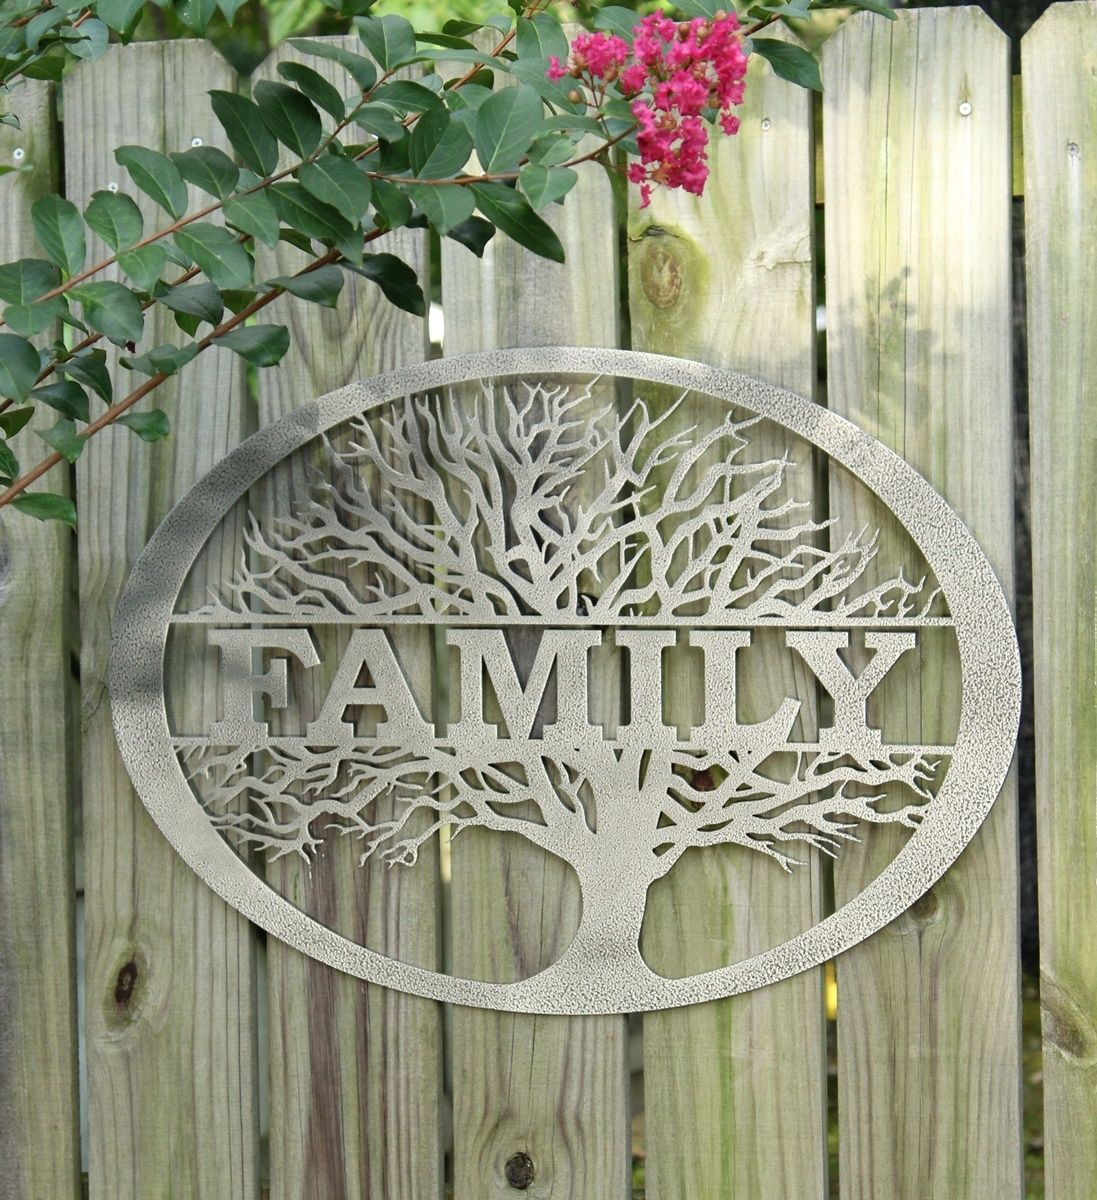 Family tree wall art mounted outside on a wooden fence metal tree